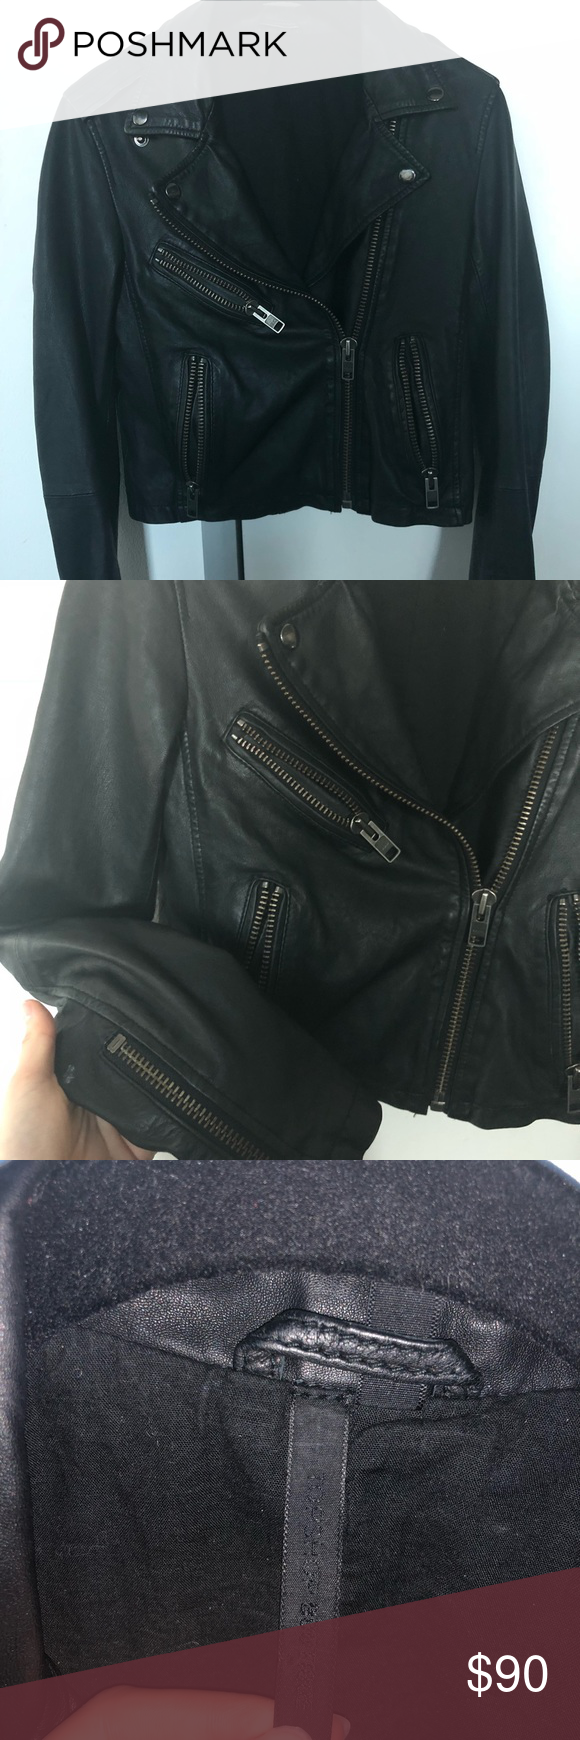 REAL LEATHER JACKET Top shop boutique leather jacket. So